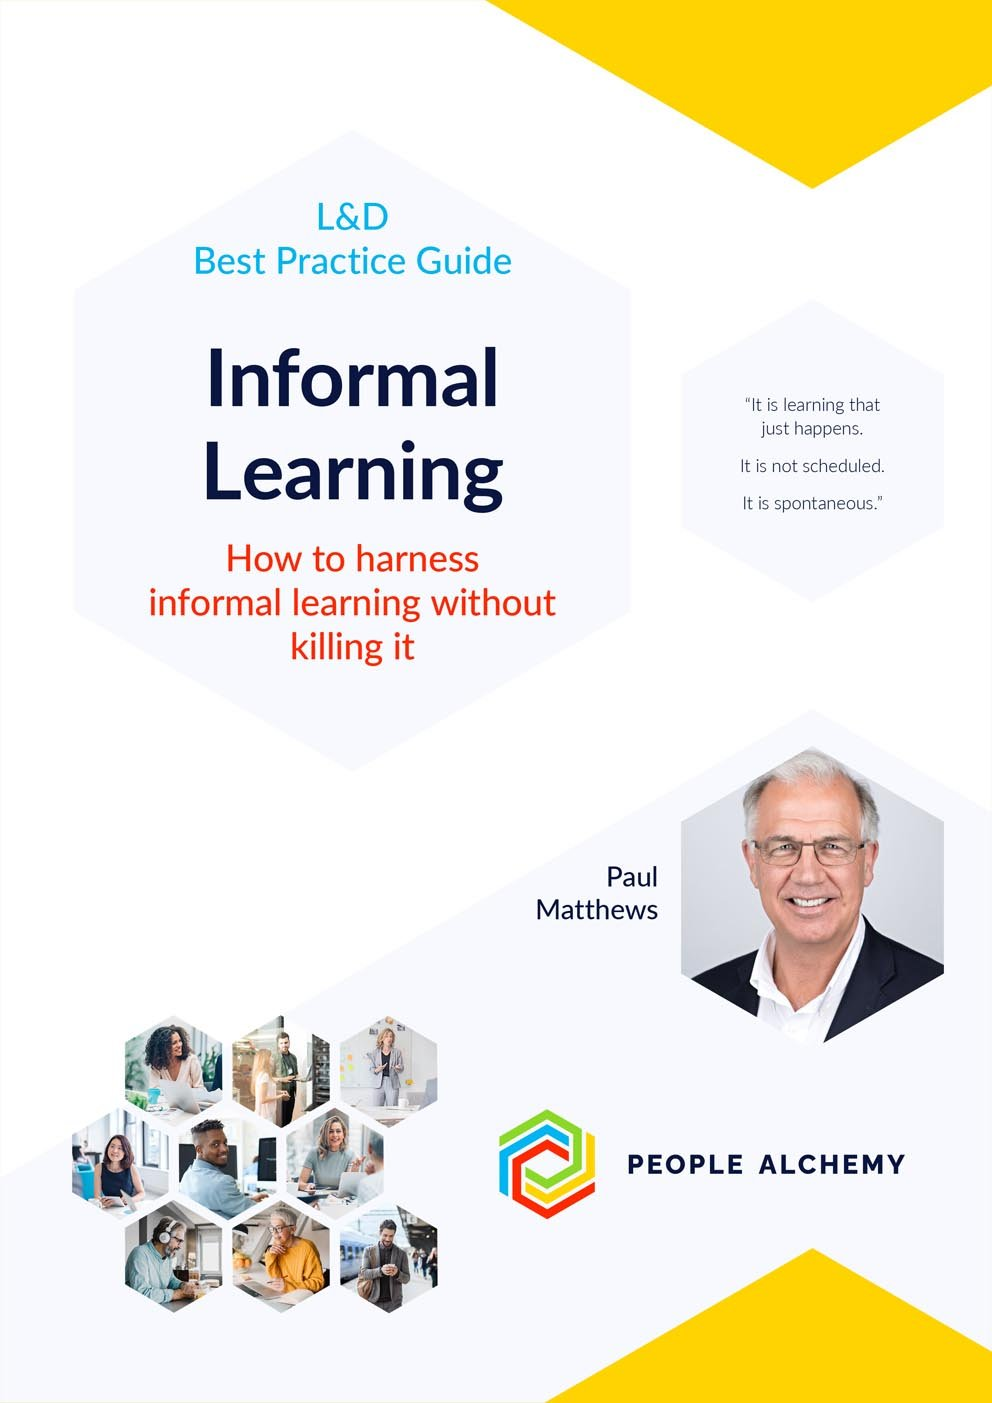 Informal Learning: How to harness it without killing it